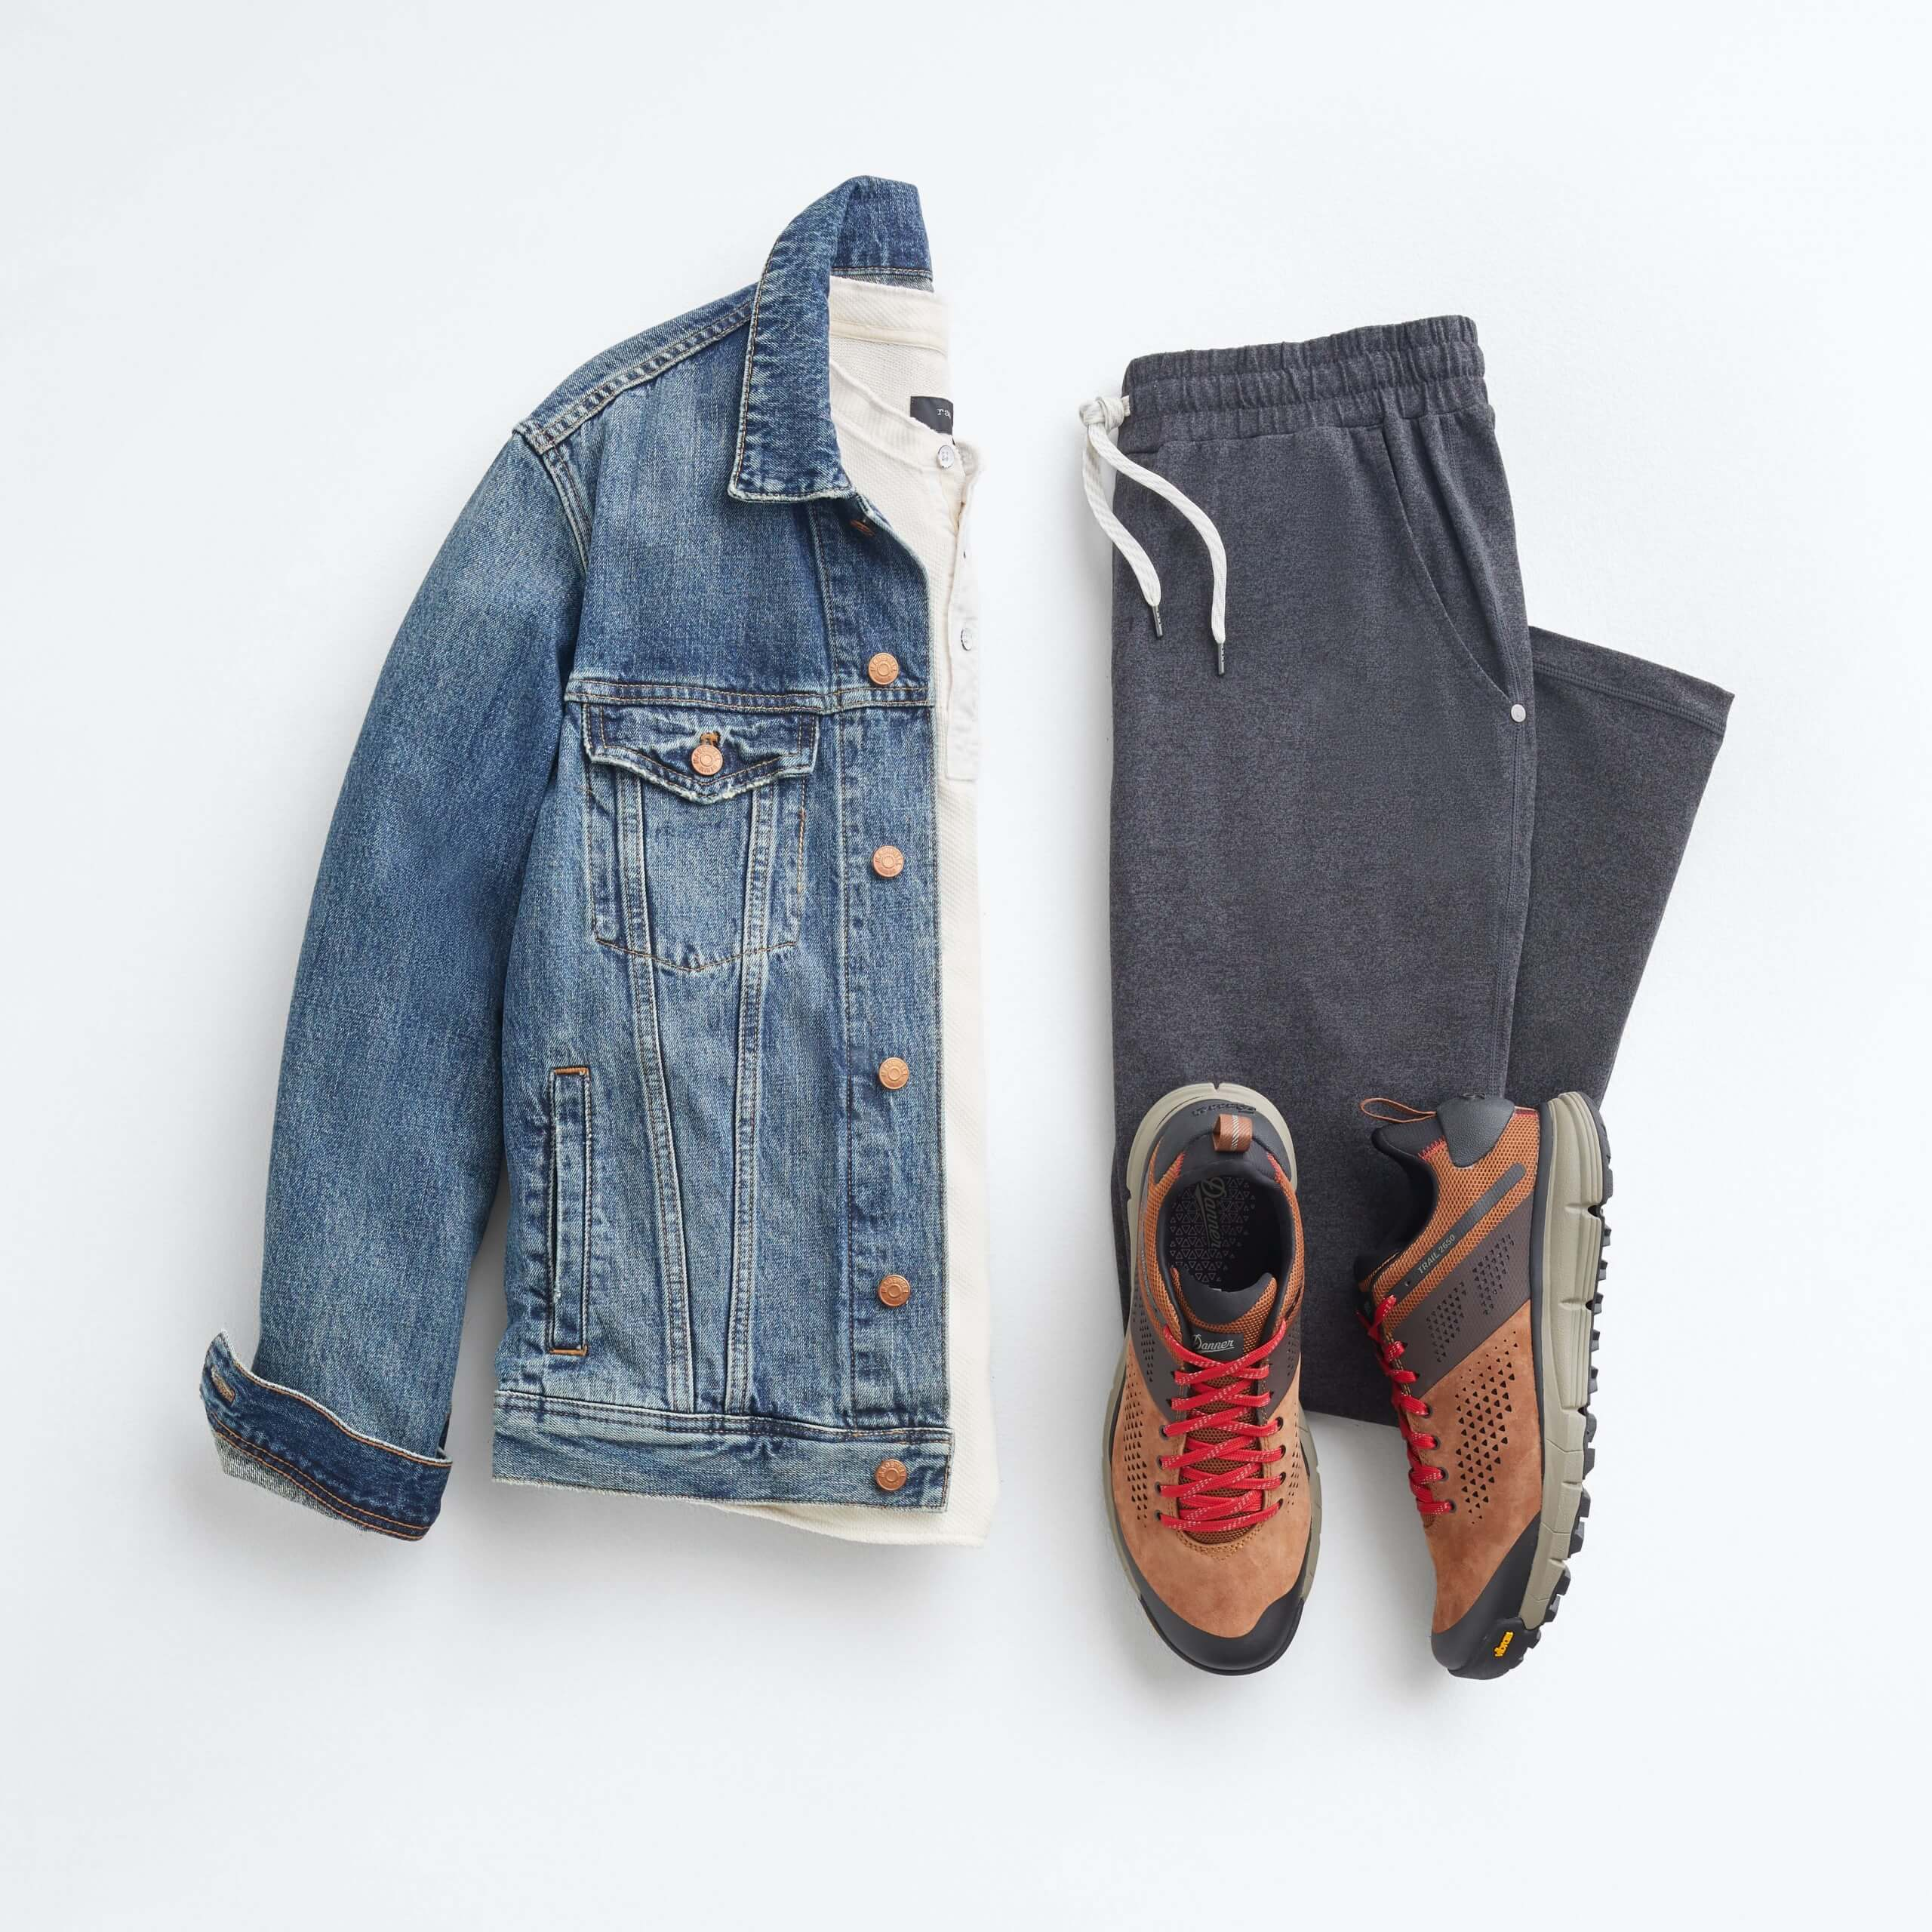 Stitch Fix jean jacket men's outfit laydown with blue jean jacket, light grey henley, navy sweatpants and brown lace-up sneakers with red laces.